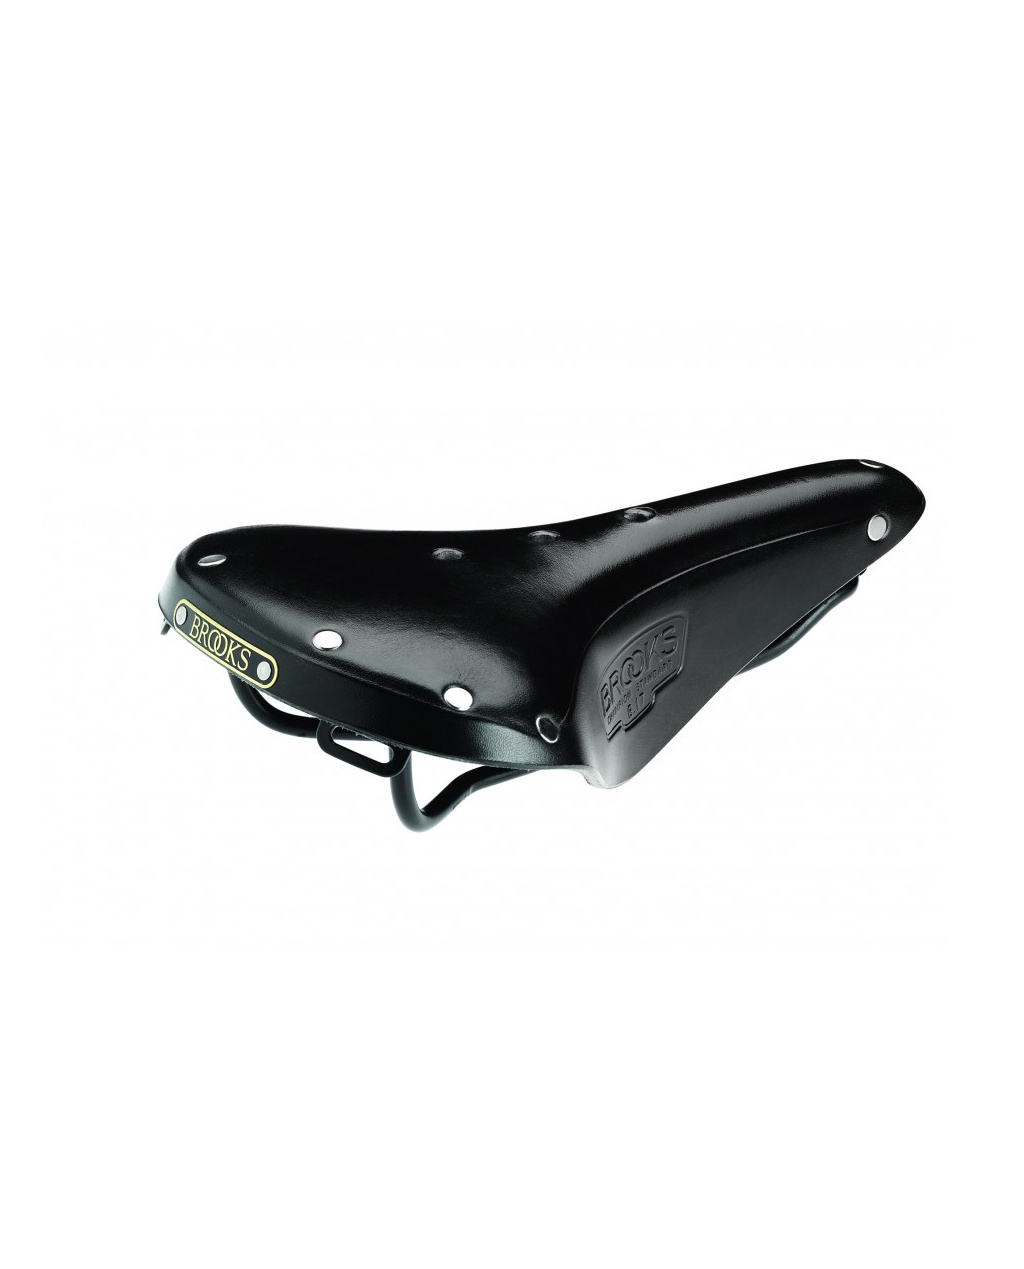 Brooks B17 Standard - Black